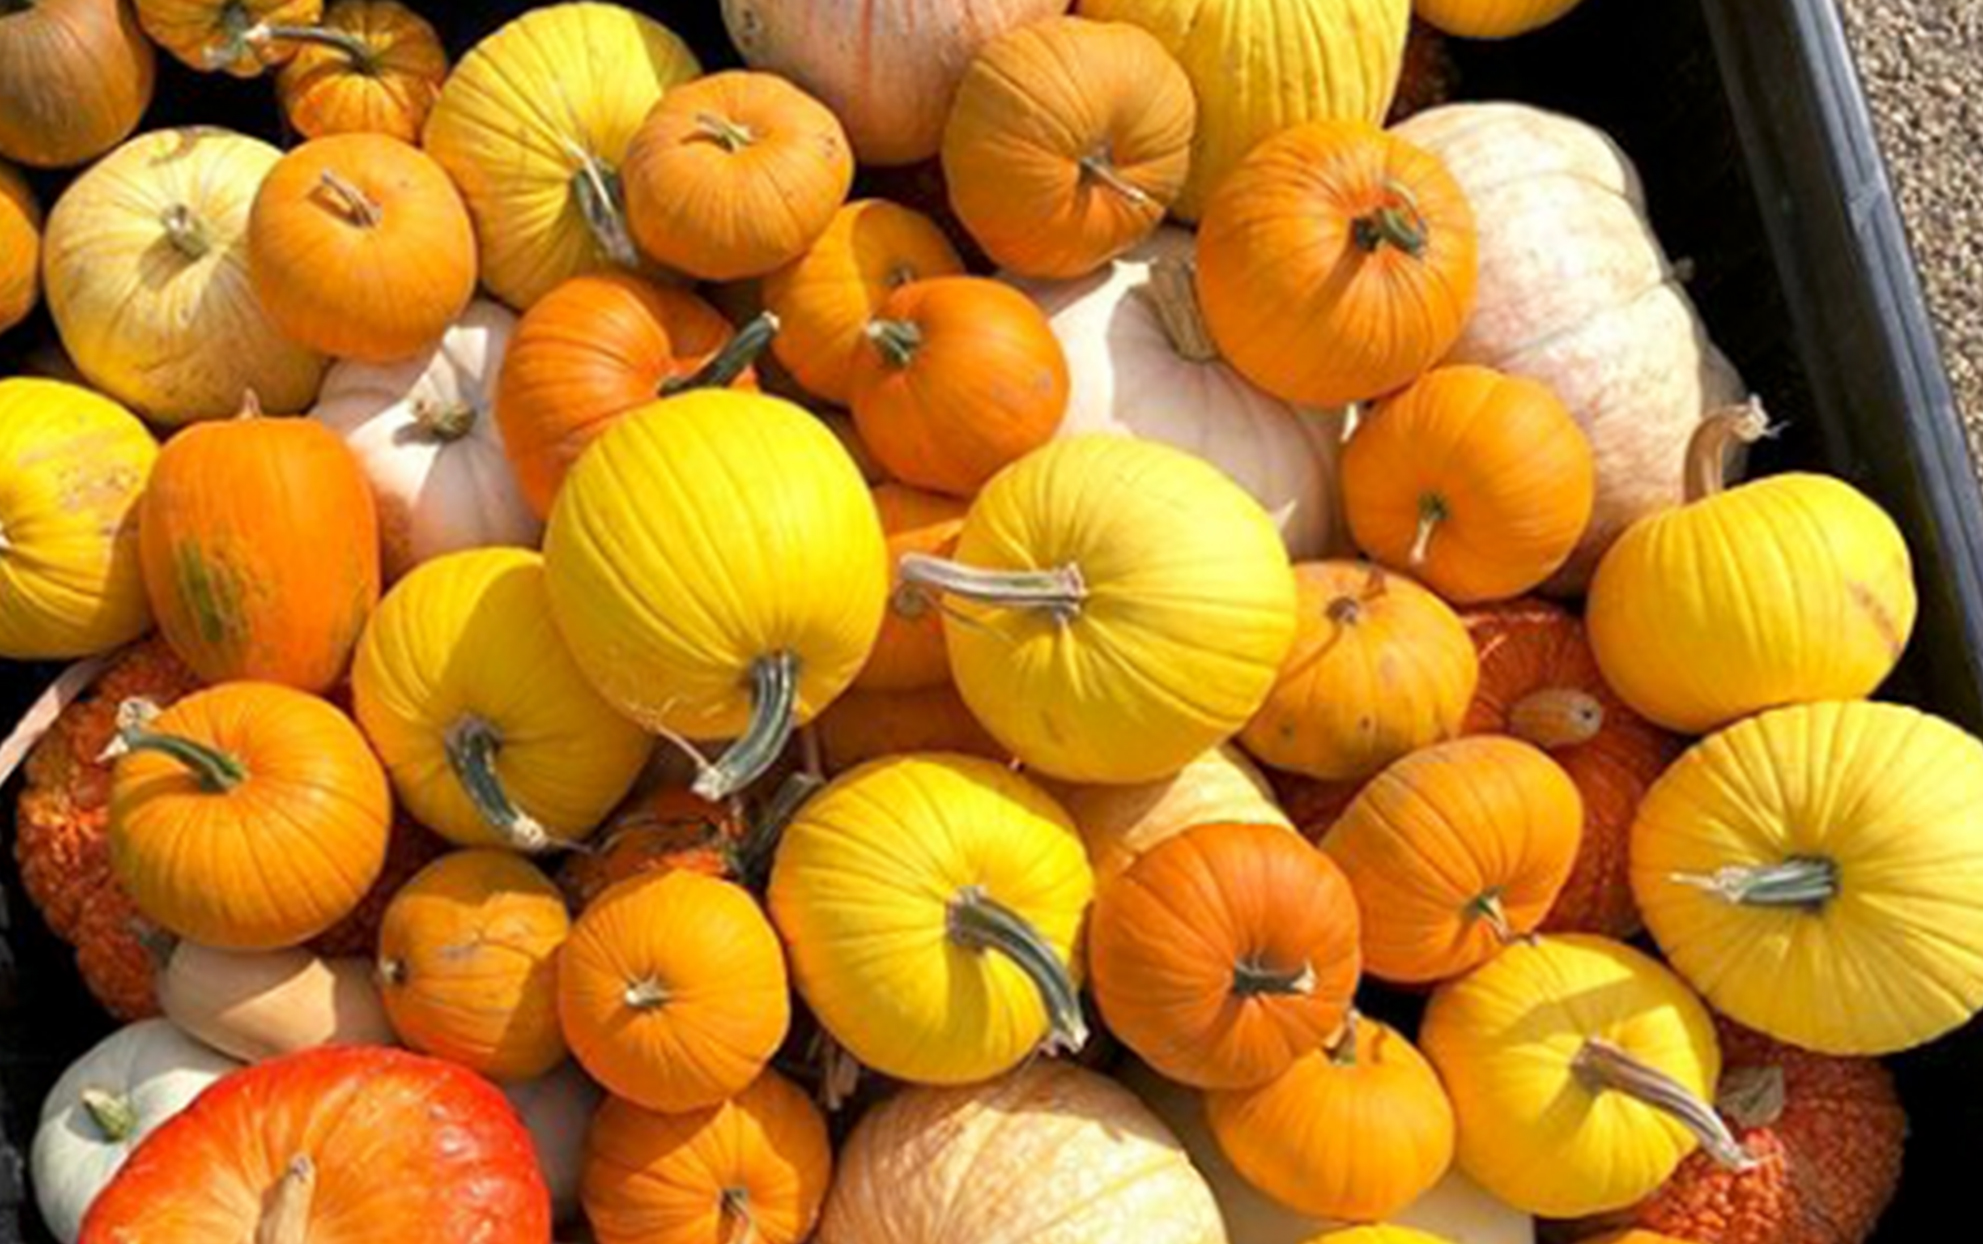 Pile of yellow, orange, and white pumpkins in truck